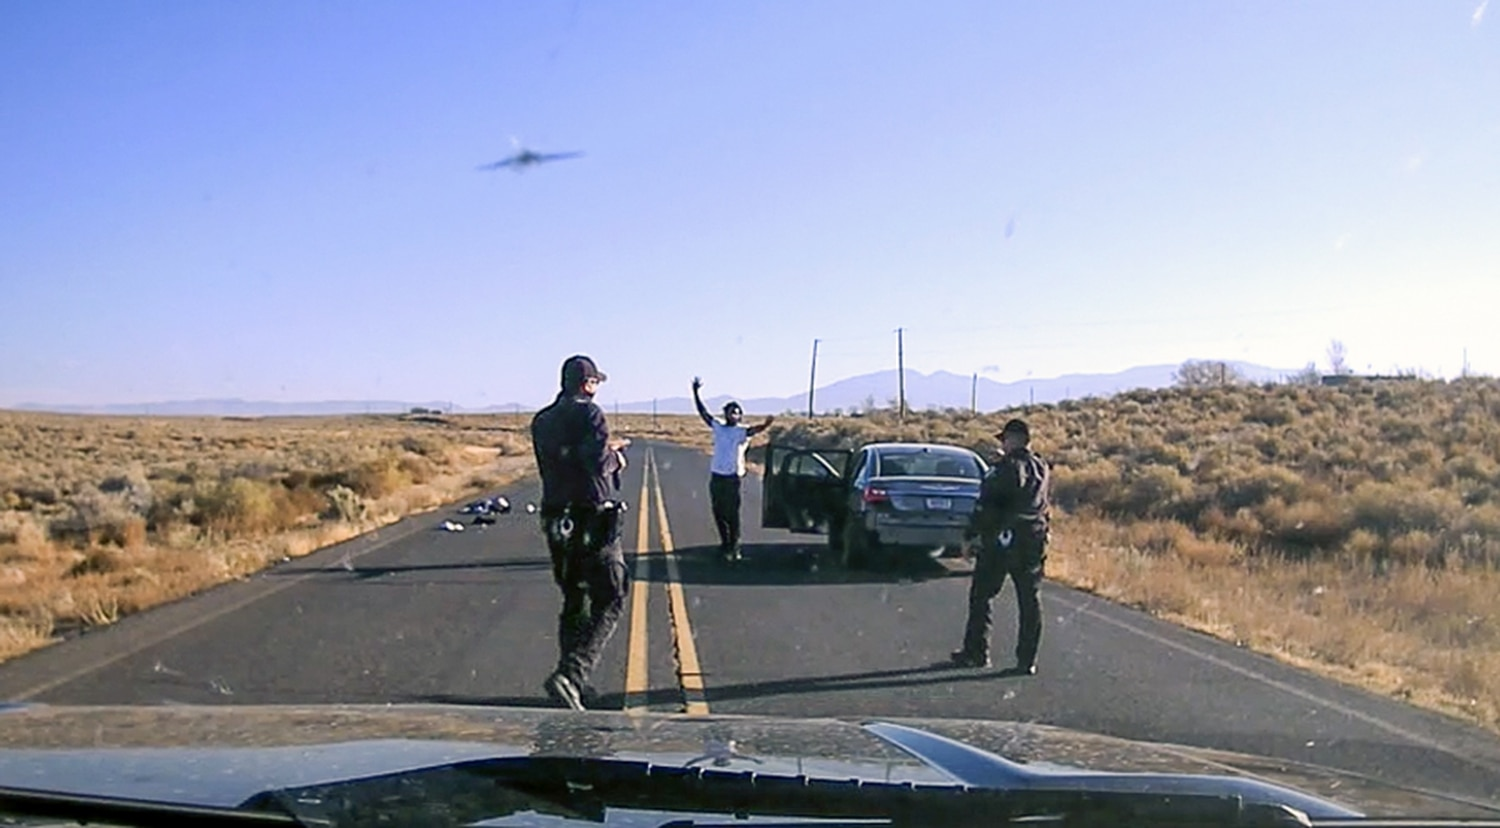 Dashcam video from New Mexico State Police shows Officer Gene Gonzales at left and Sgt. Robert Carrejo at right. Rodney Applewhite, center, had been kneeling with his hands up, but stood up when the police told him to. Carrejo then approached him with handcuffs.